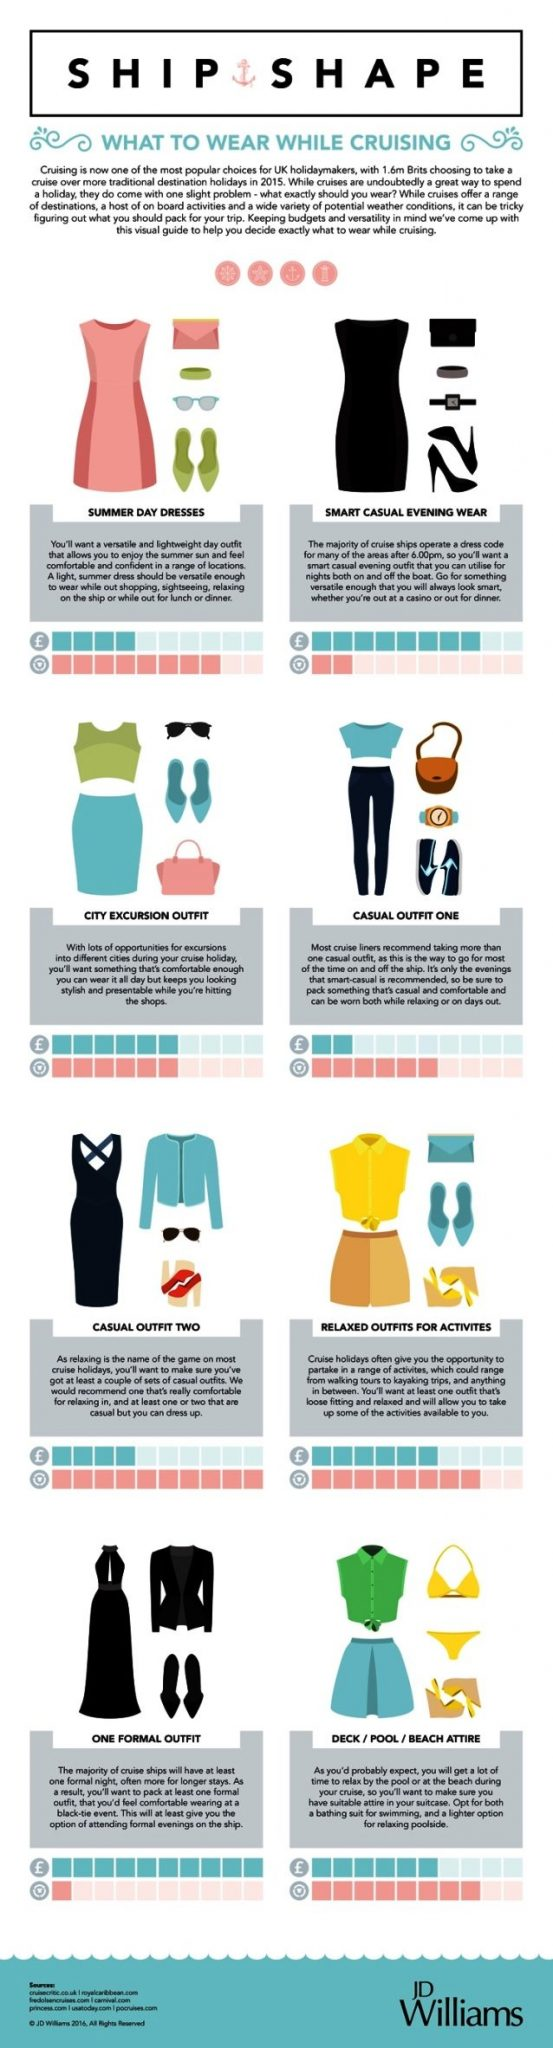 Cruise Packing Guide Infographic - JD-Williams